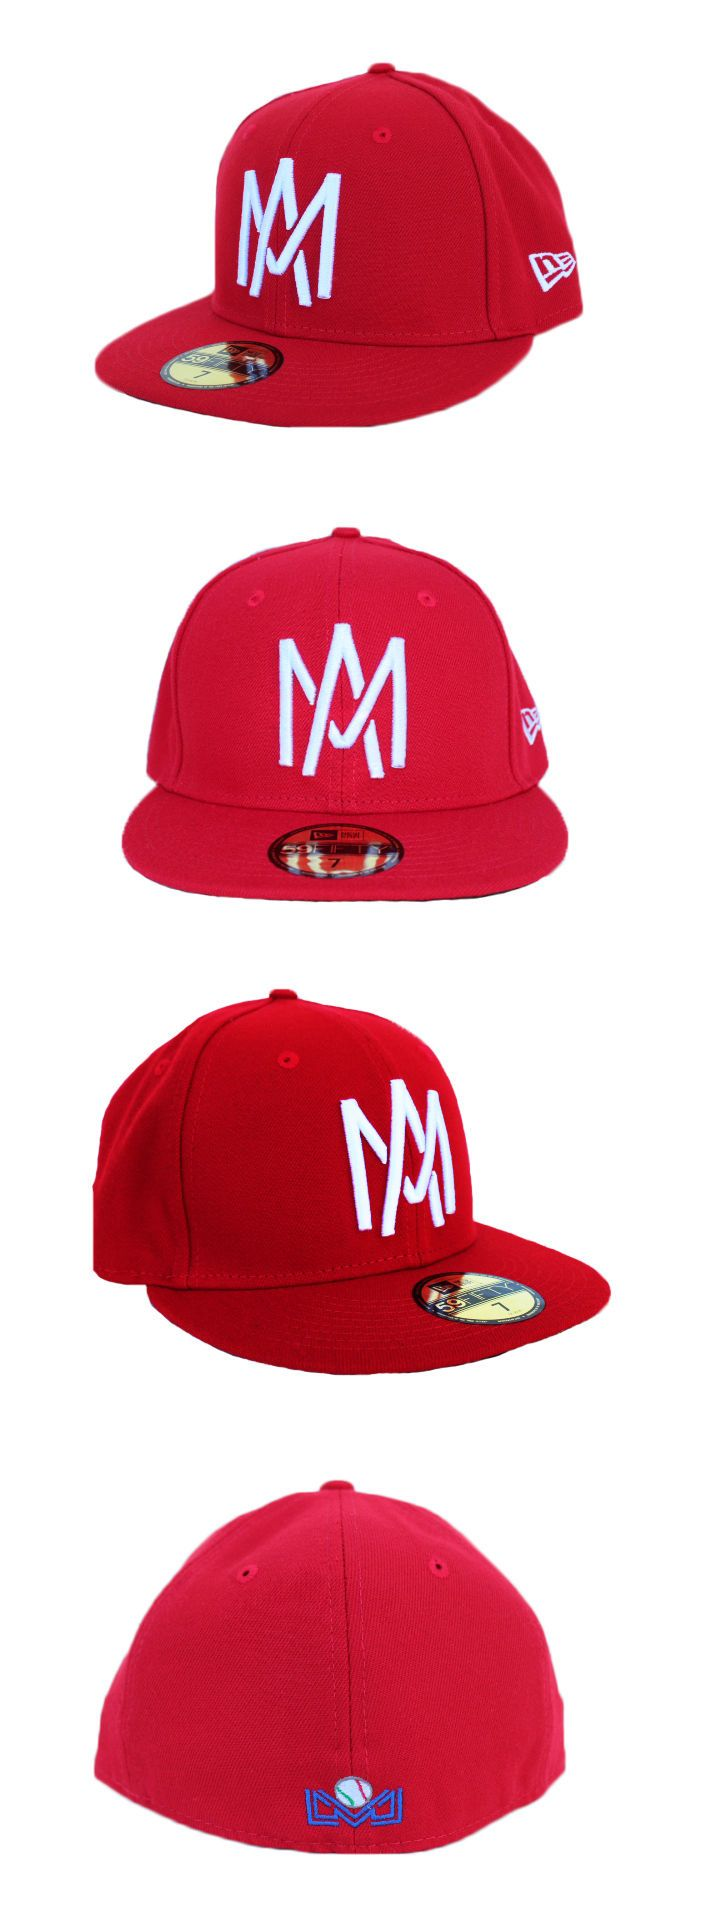 Baseball-Other 204: Aguilas De Mexicali Lmb New Era 59Fifty Scarlet Red -> BUY IT NOW ONLY: $49.95 on eBay!